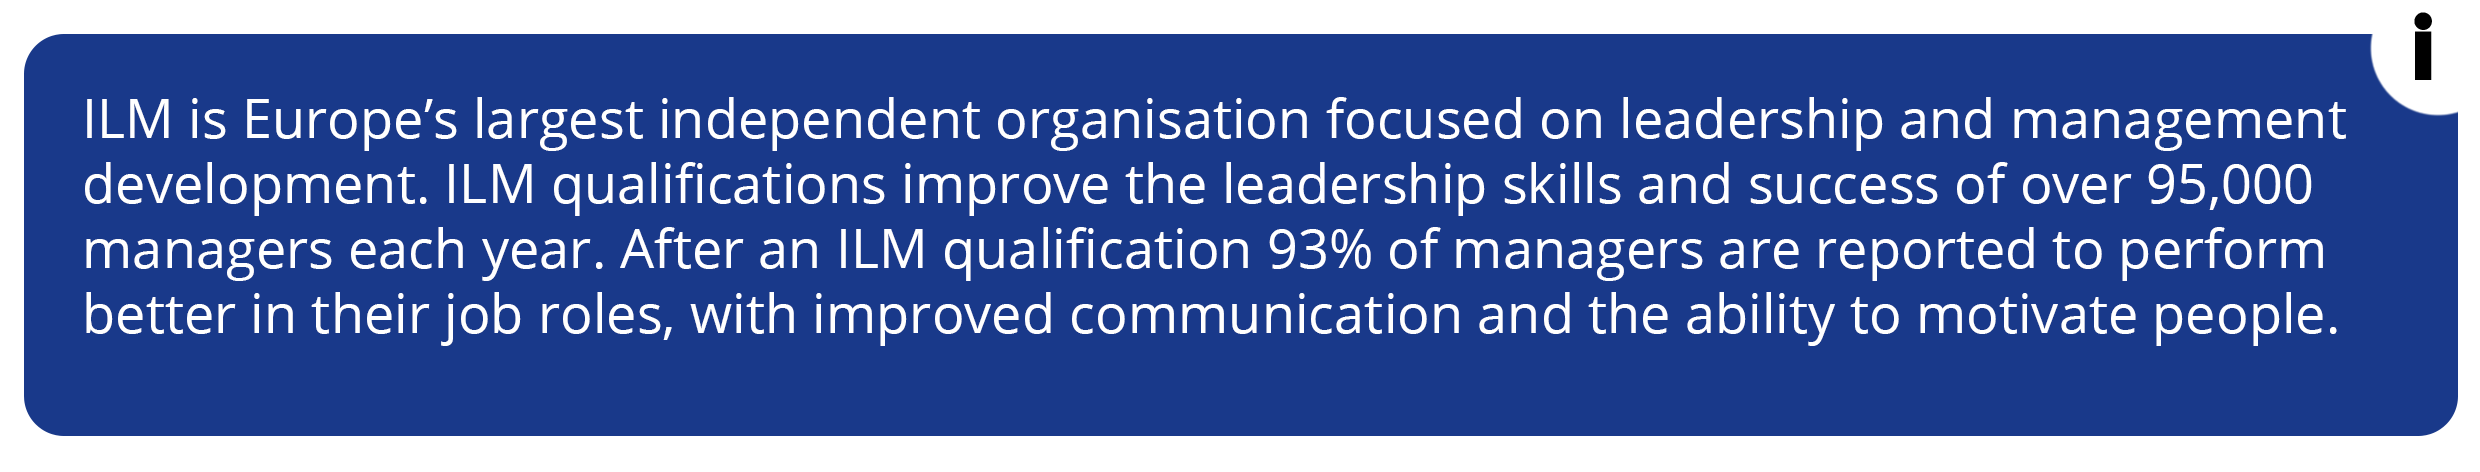 ILM is Europe's largest independent organisation focused on leadership and management development. ILM qualifications improve the leadership skills and success of over 95,000 managers each year.